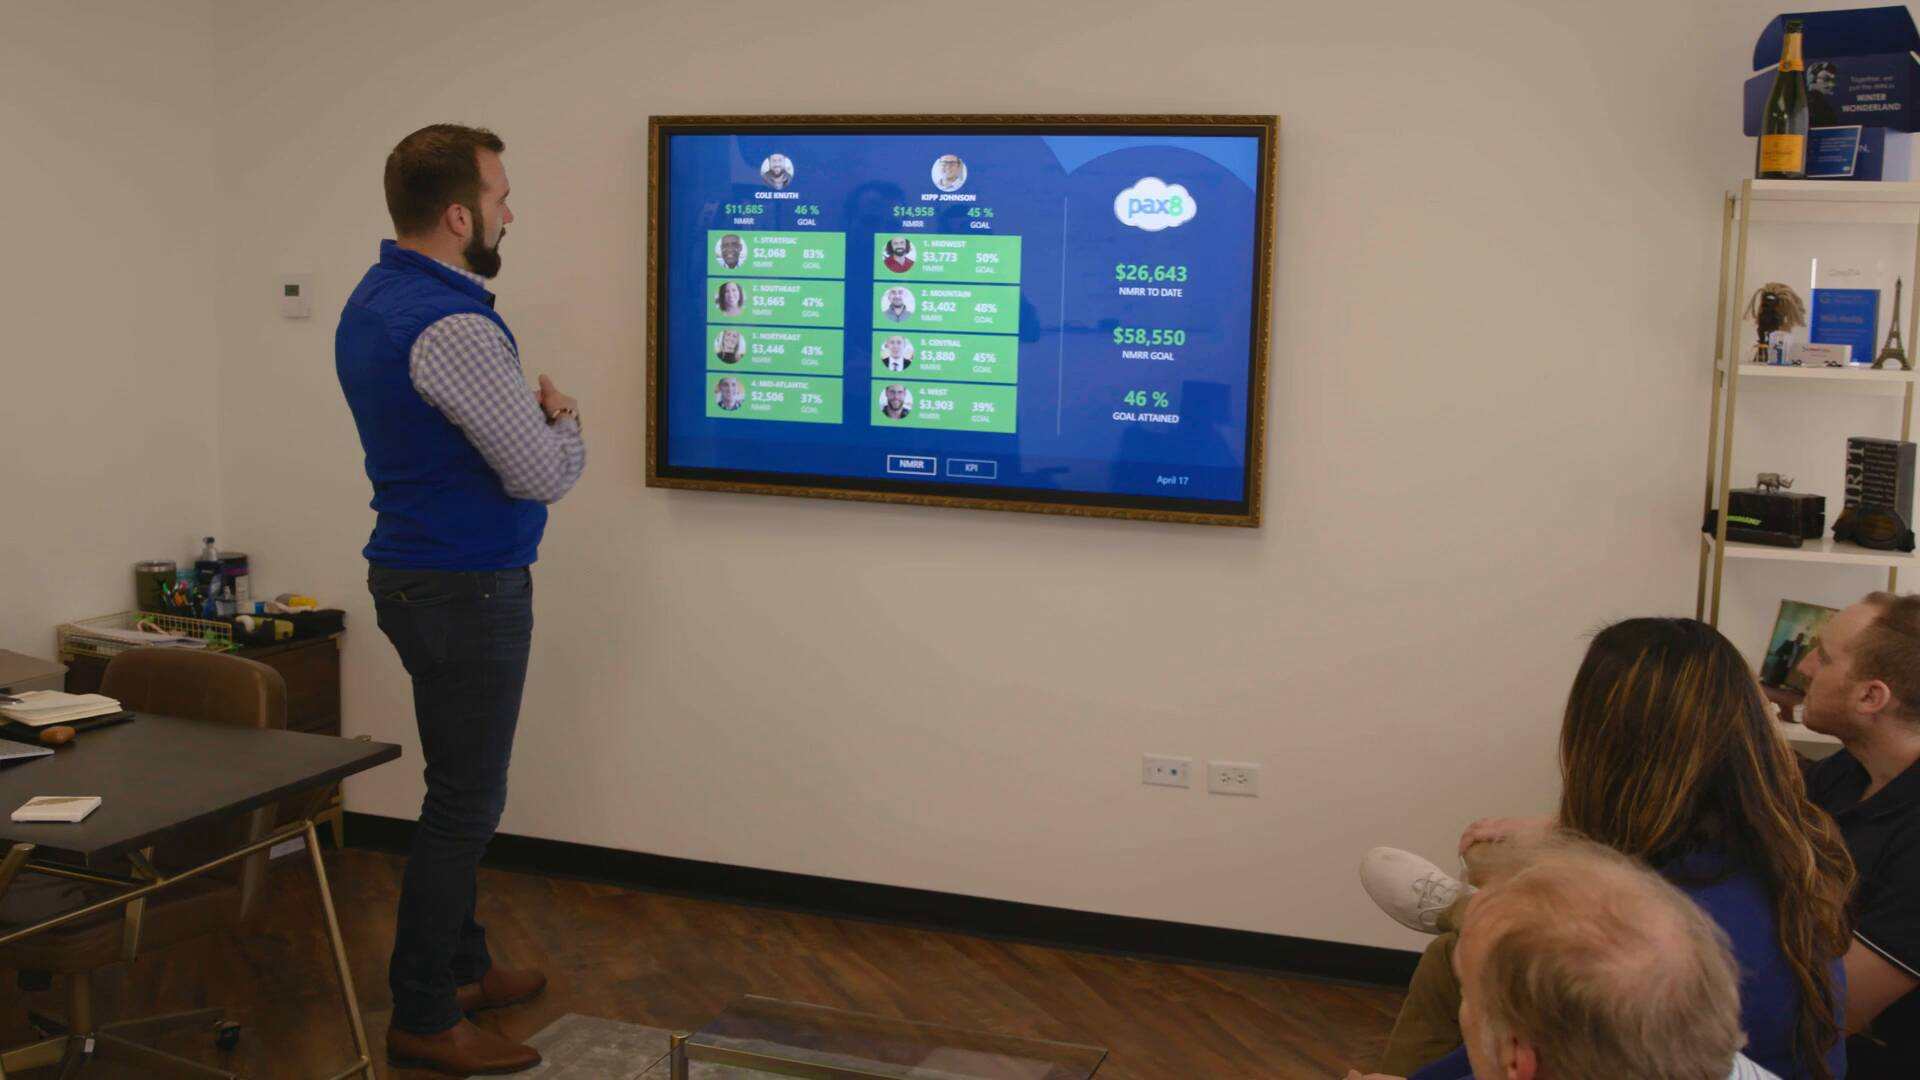 fwi digital signage solutions for pax8